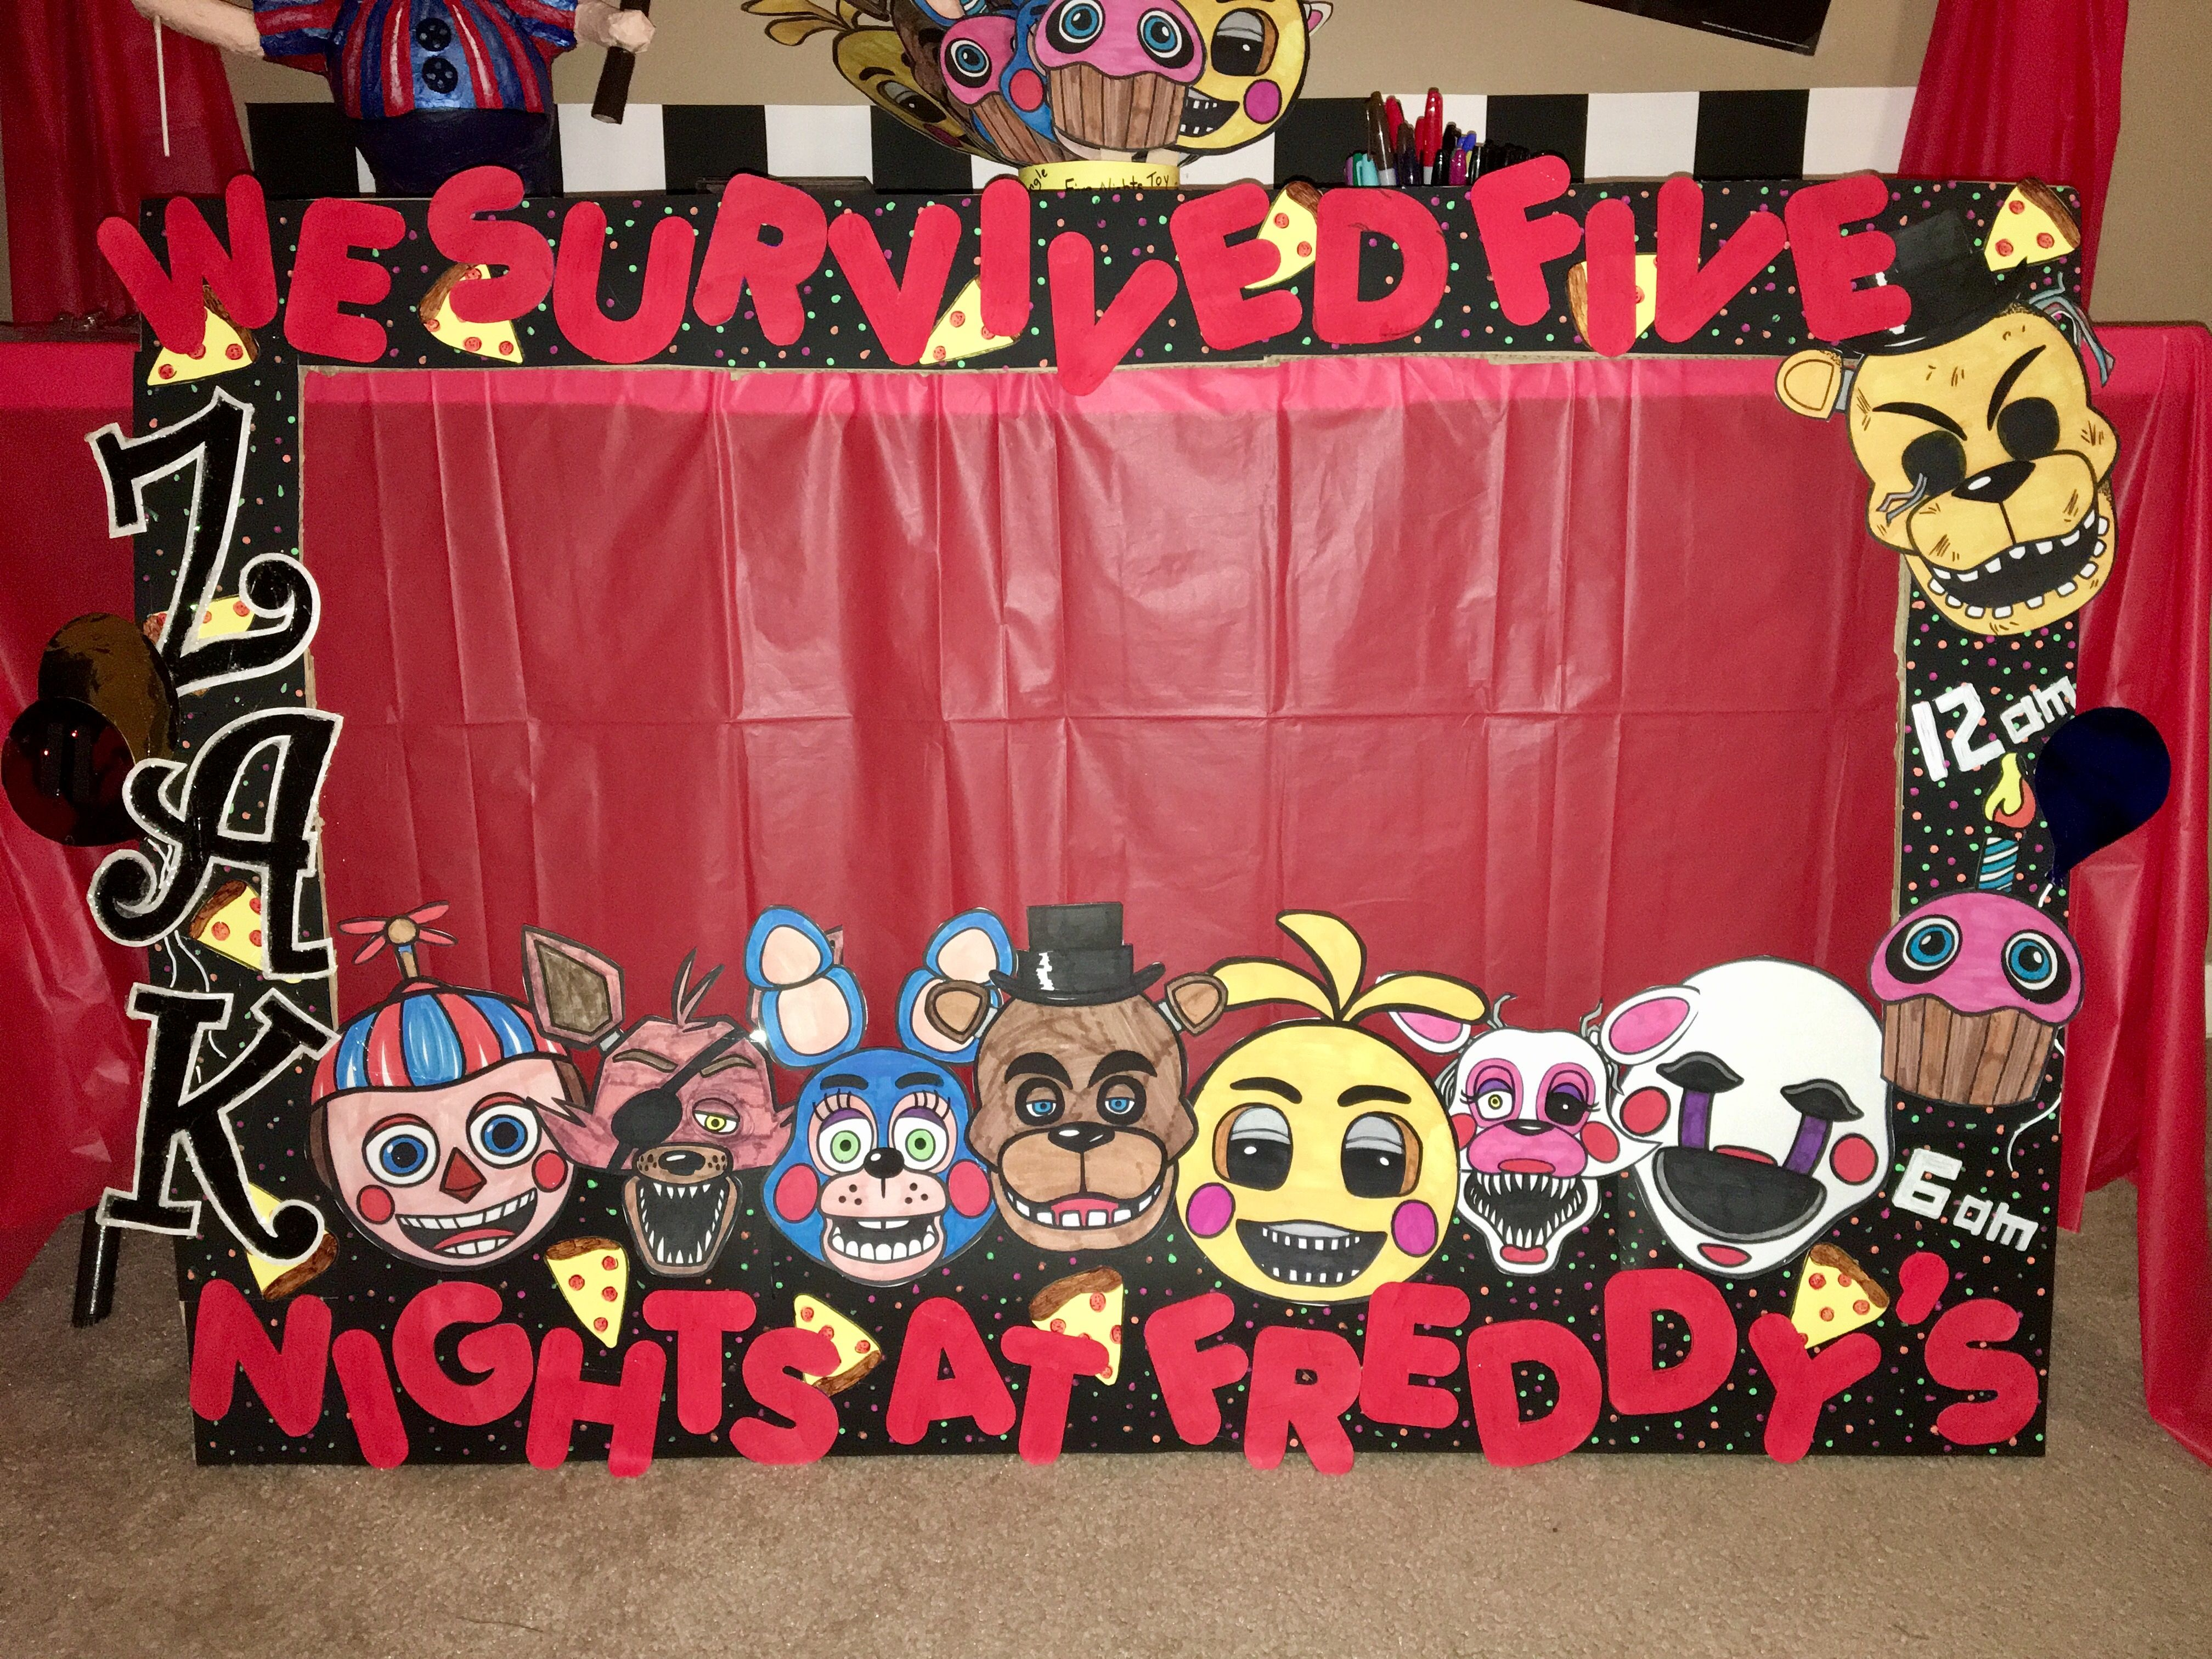 Ideas five nights at freddy party - Fnaf Birthday Photo Frame Made Out Of Cardboard